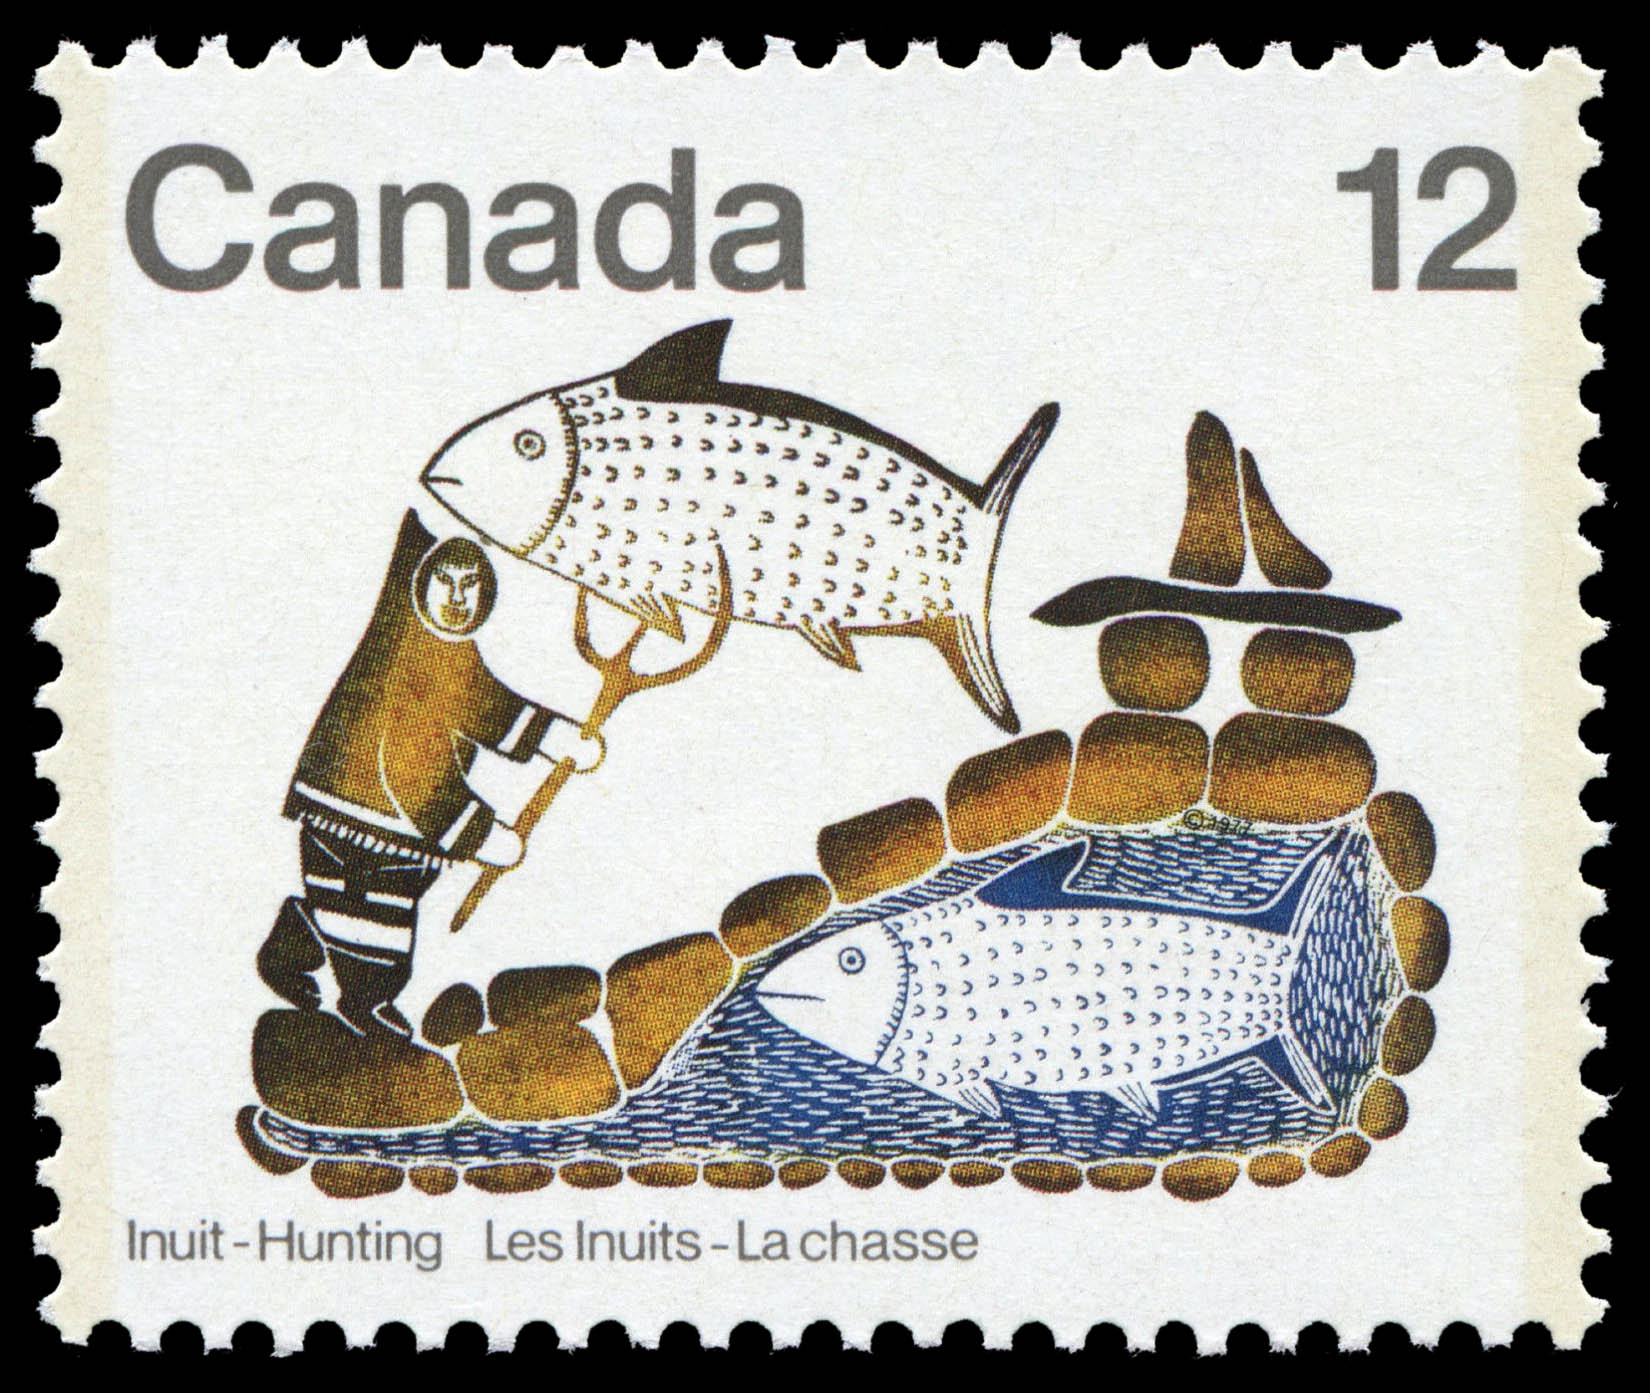 Fisherman's Dream Canada Postage Stamp